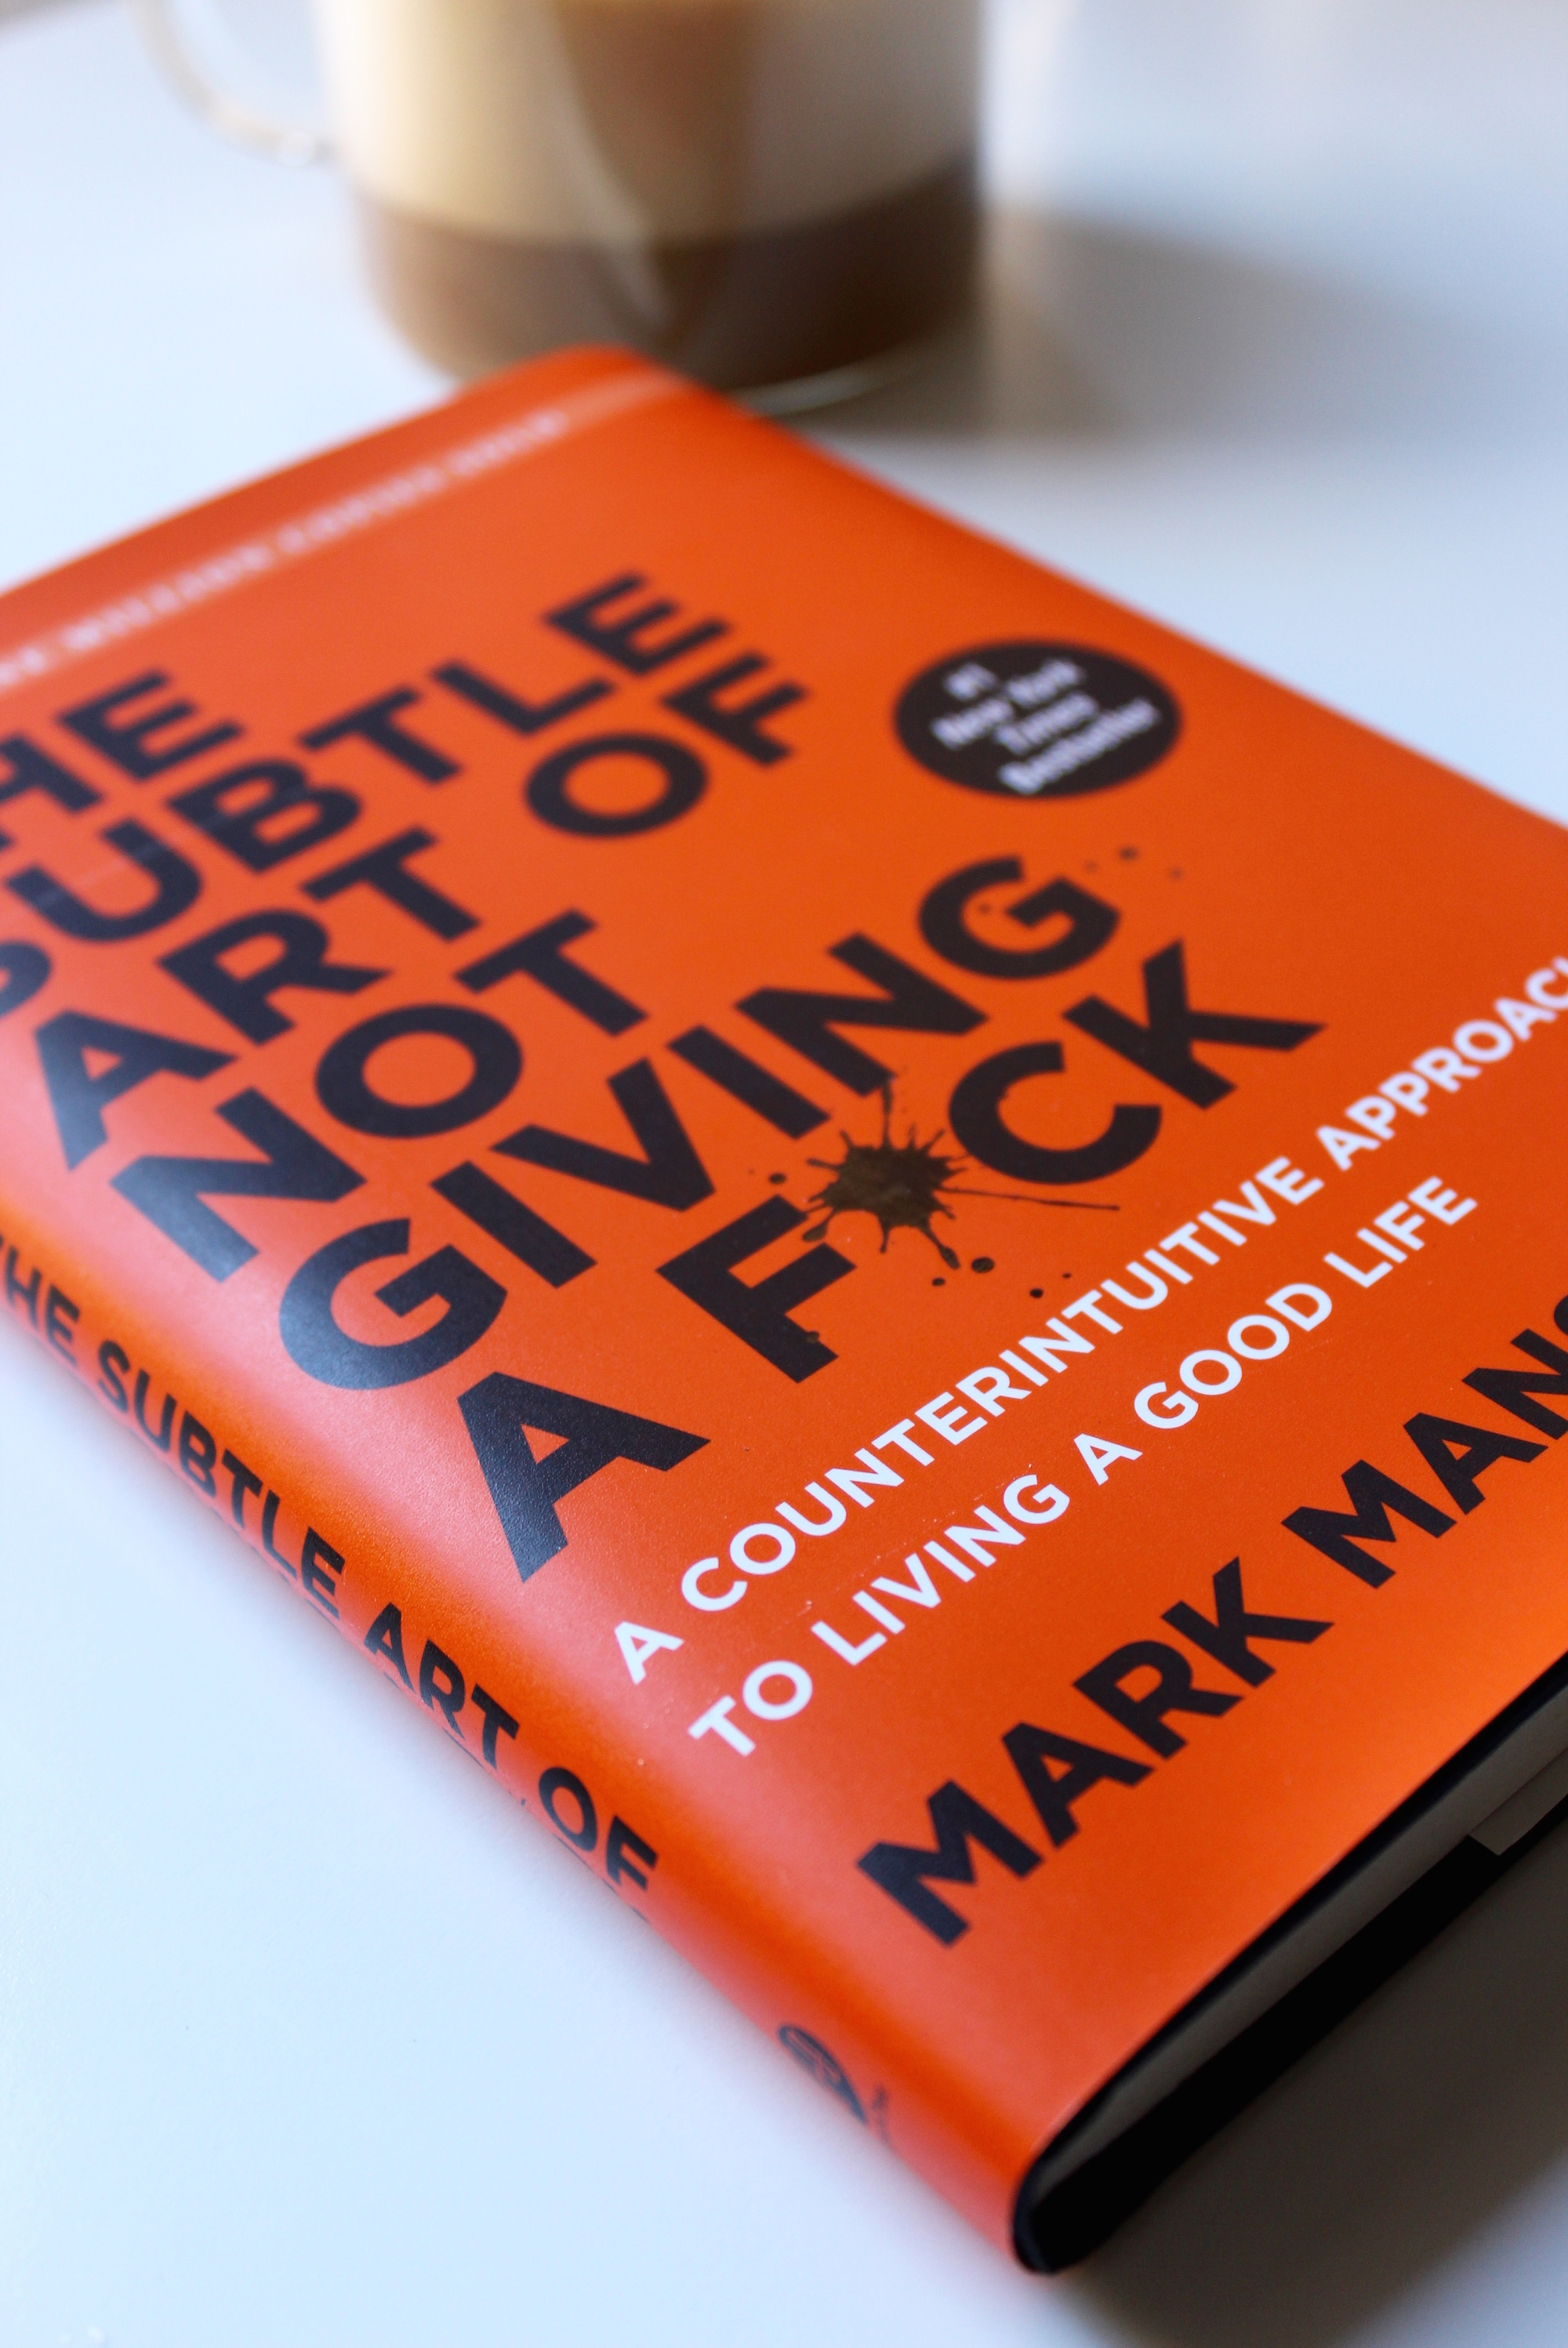 Learning-The-Subtle-Art-of-Not-Giving-A-Fuck-Book-Review-1 | The Bellezza Corner